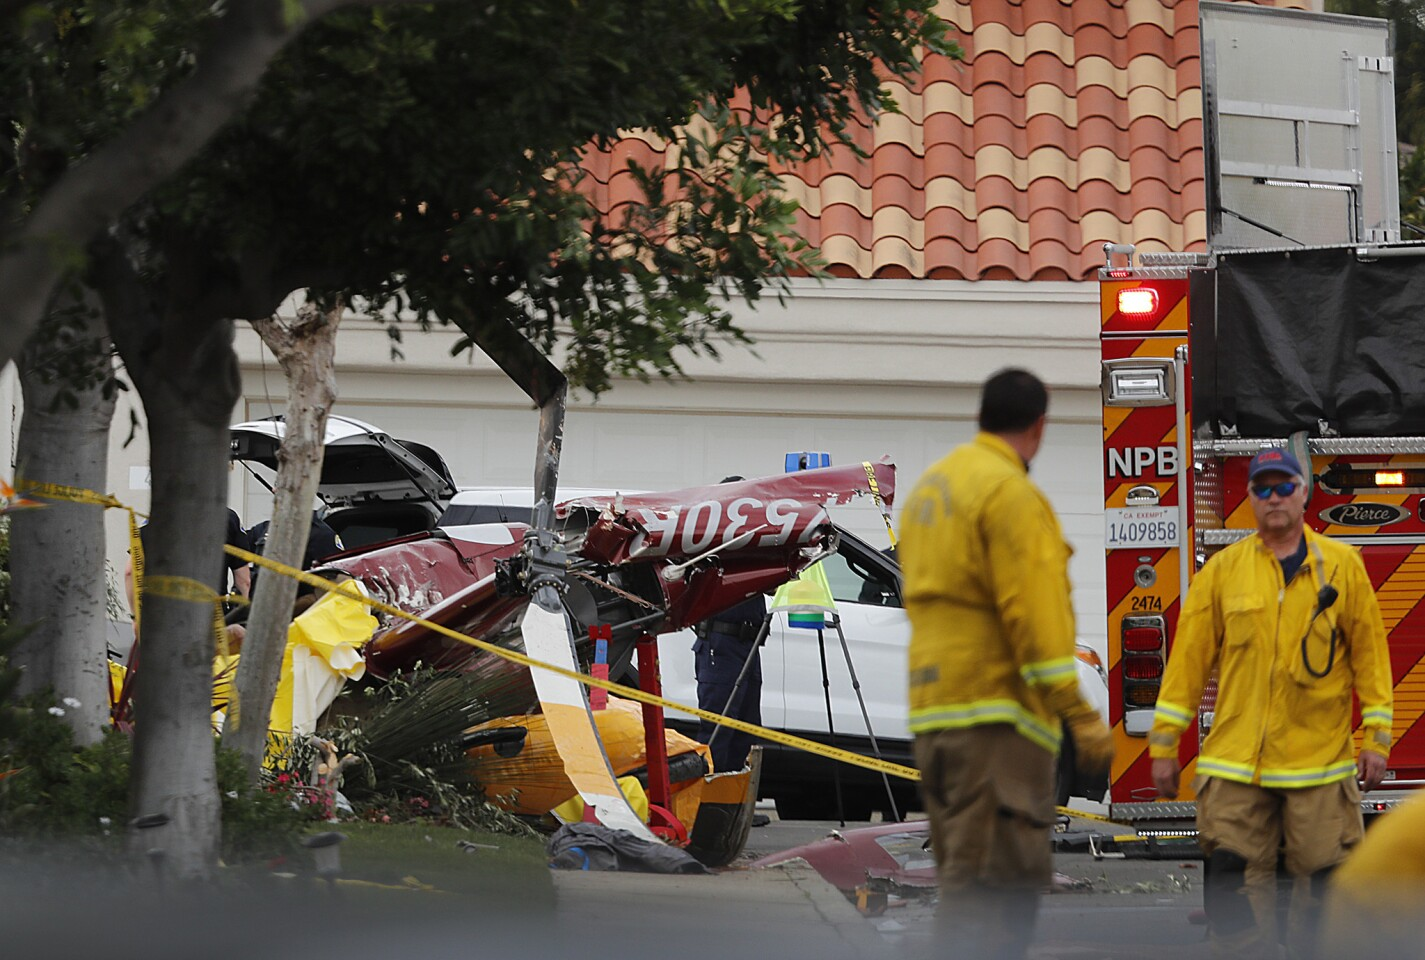 Fire crews work the scene of a helicopter crash that killed three people and injured two others on Shearwater Place in the Bayview Terrace community in Newport Beach.